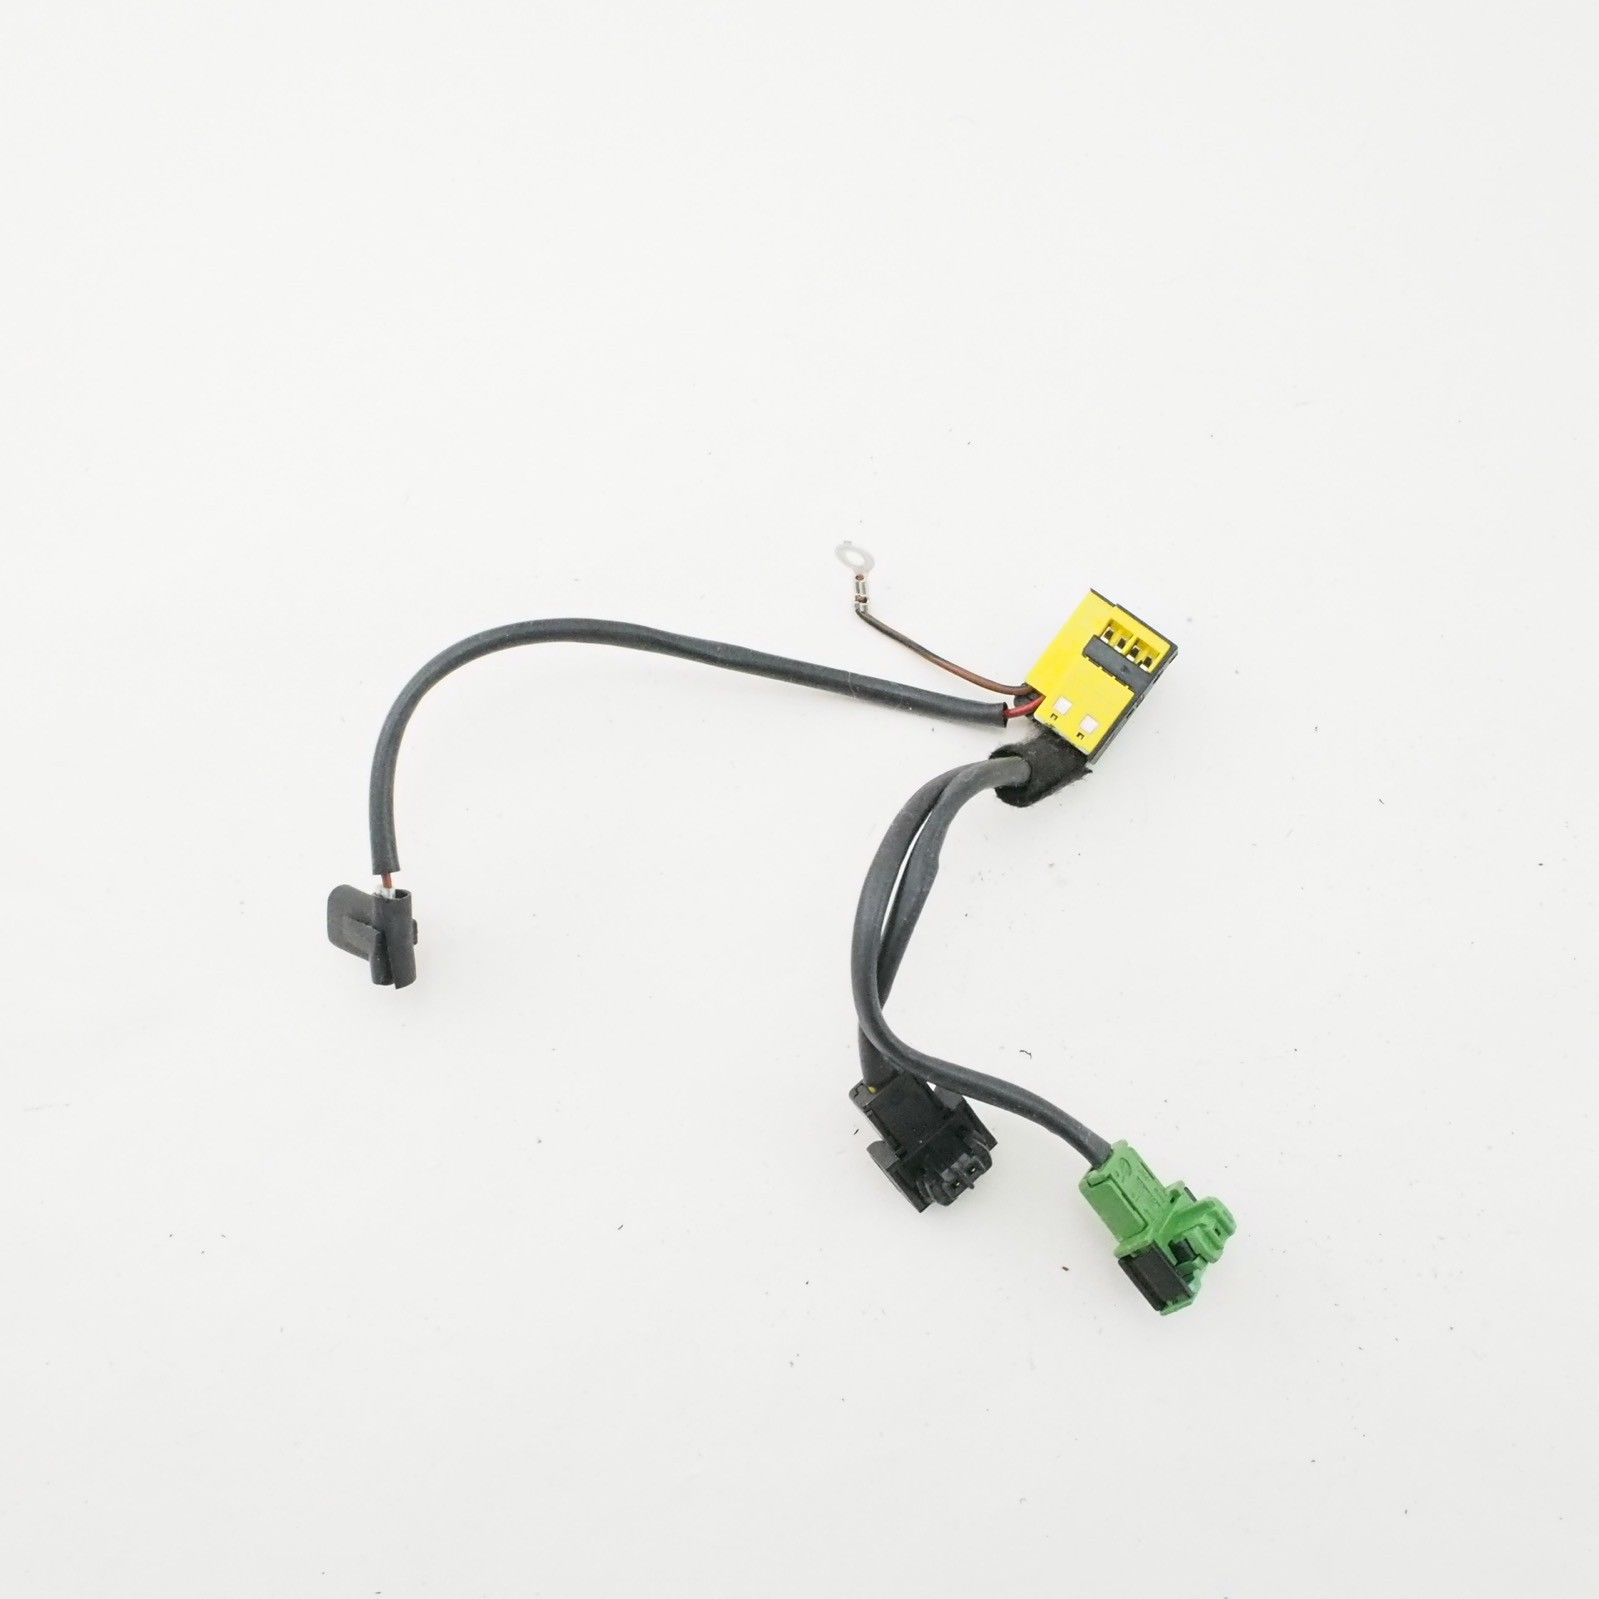 airbag wiring harness hn 7680  bmw airbag wiring harness  hn 7680  bmw airbag wiring harness